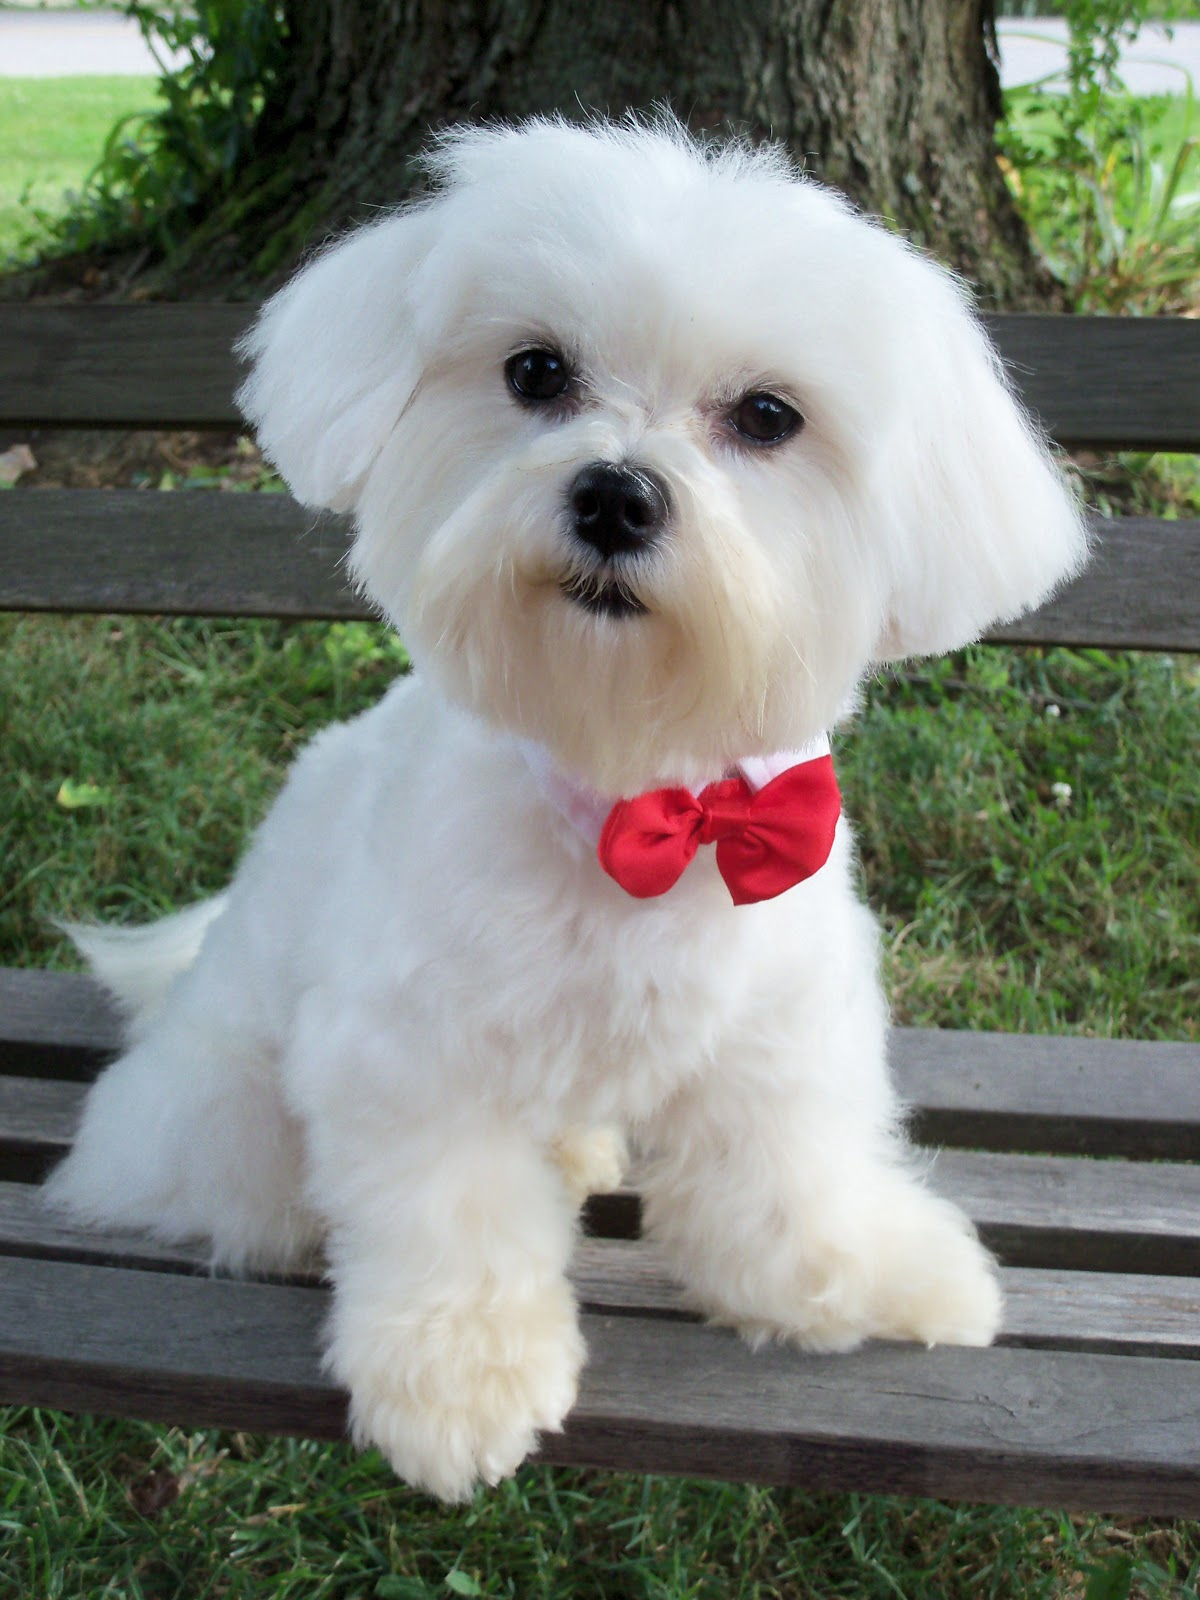 Adult Maltese Puppies wallpaper 1080p